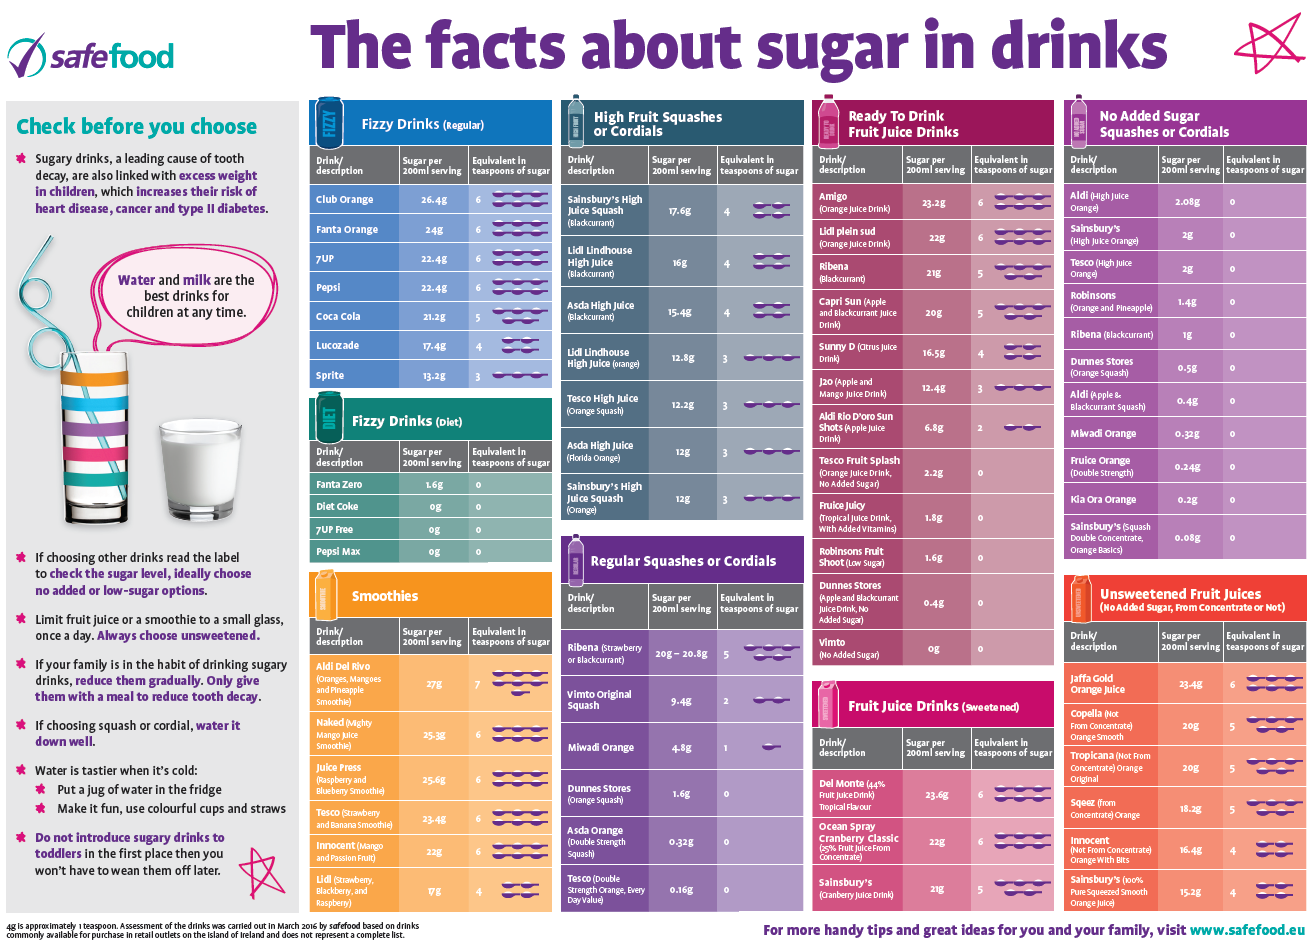 The_facts_about_sugary_drinks